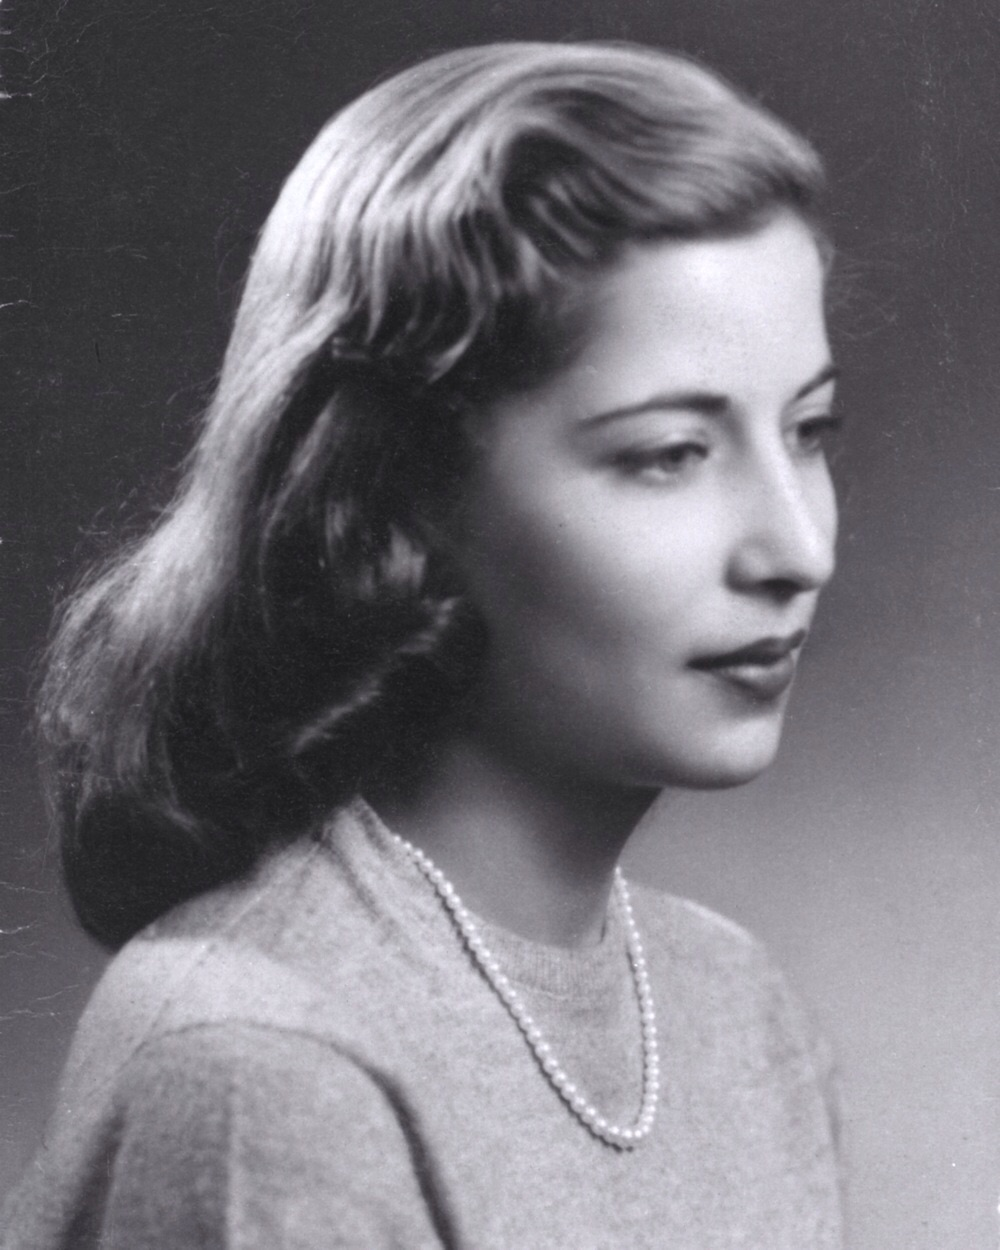 Supreme Court Justice Ruth Bader Ginsburg As a Young Woman, Turned 83 This Weekend